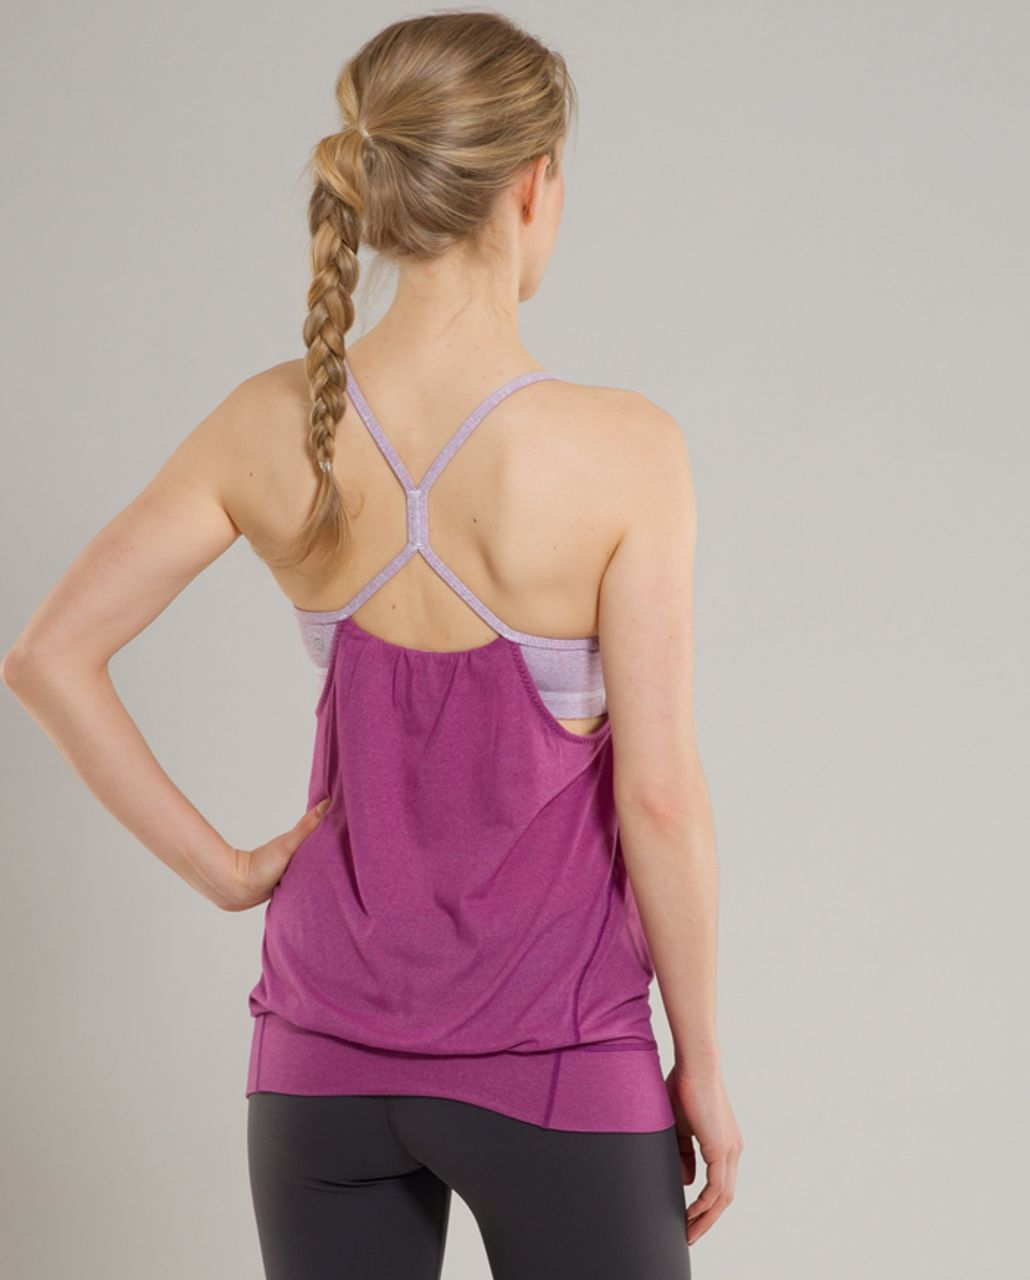 Lululemon Let It Loose Tank - Dew Berry Wee Stripe /  Dew Berry